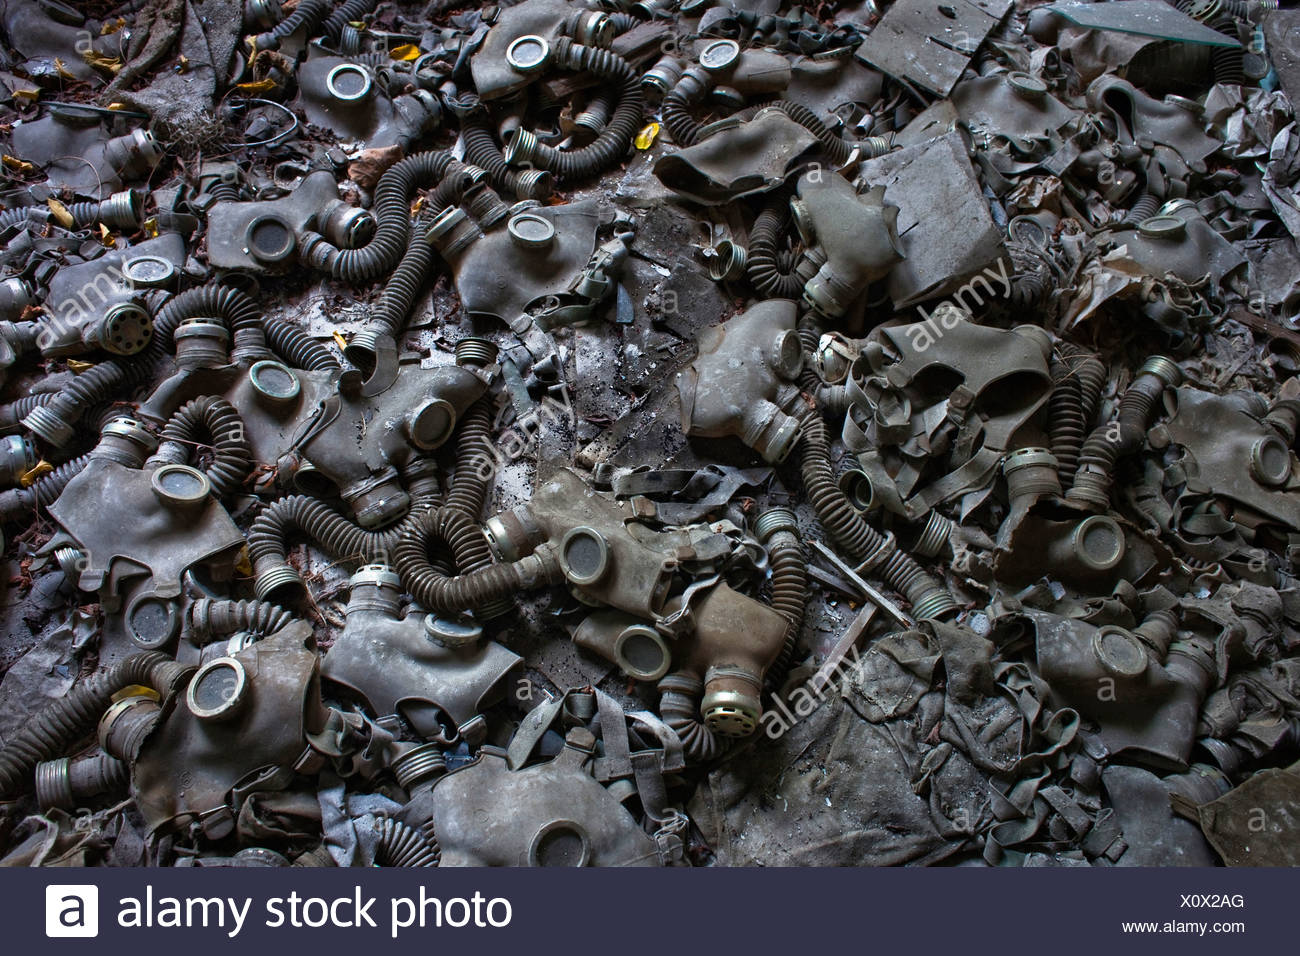 Chernobyl: 25 years later - Stock Image